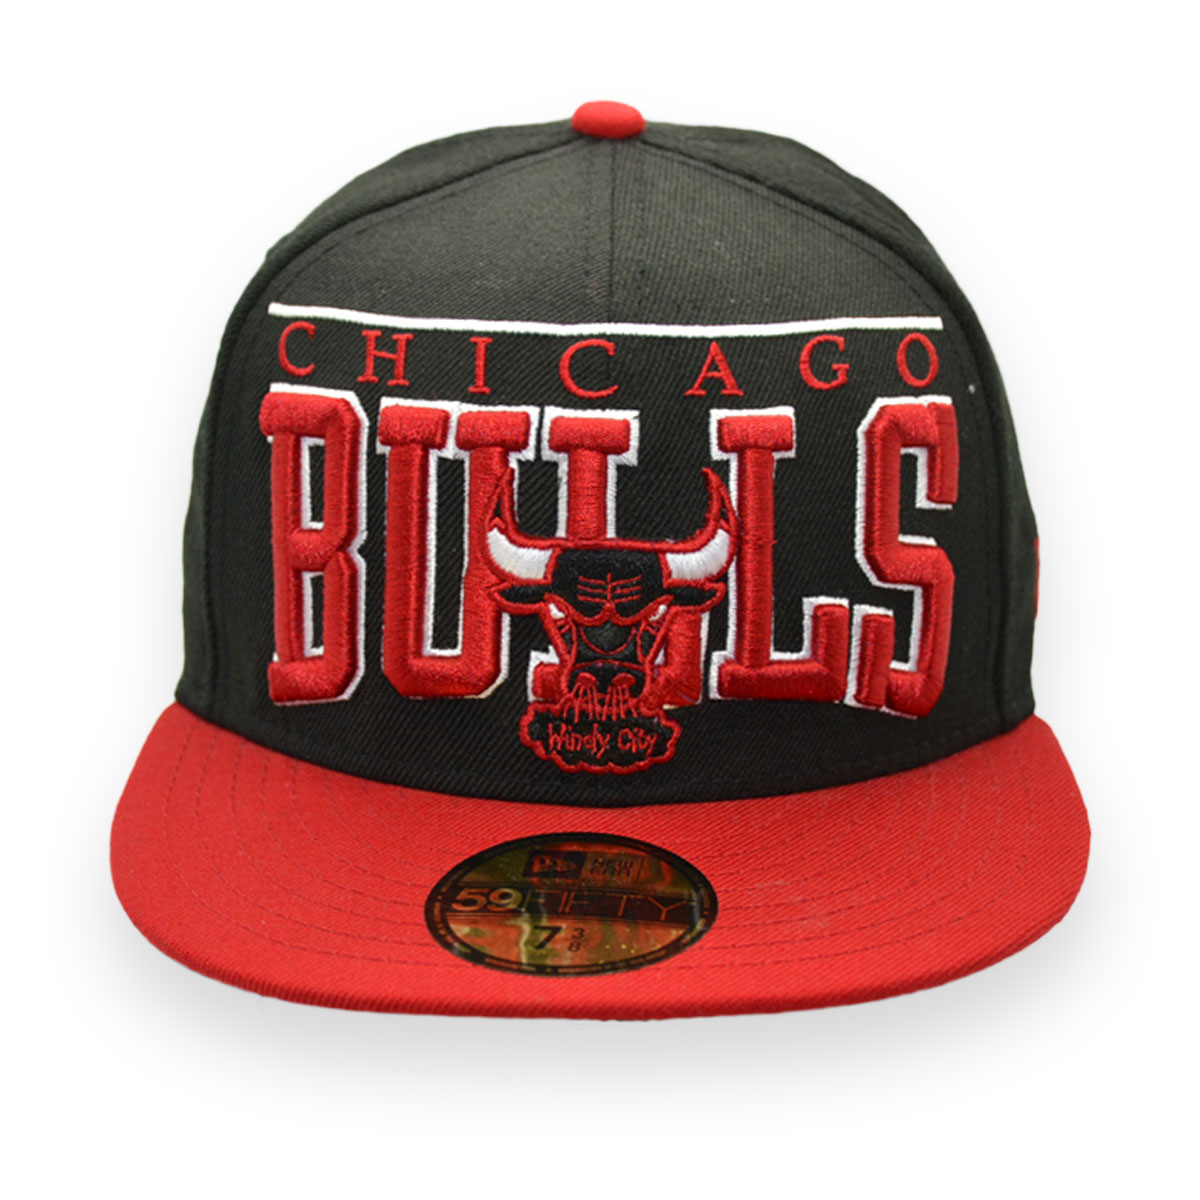 NEW ERA CHICAGO BULLS NBA WINDY CITY 59FIFTY FITTED CAP 7 3 8 (58.7cm) ce85d918614